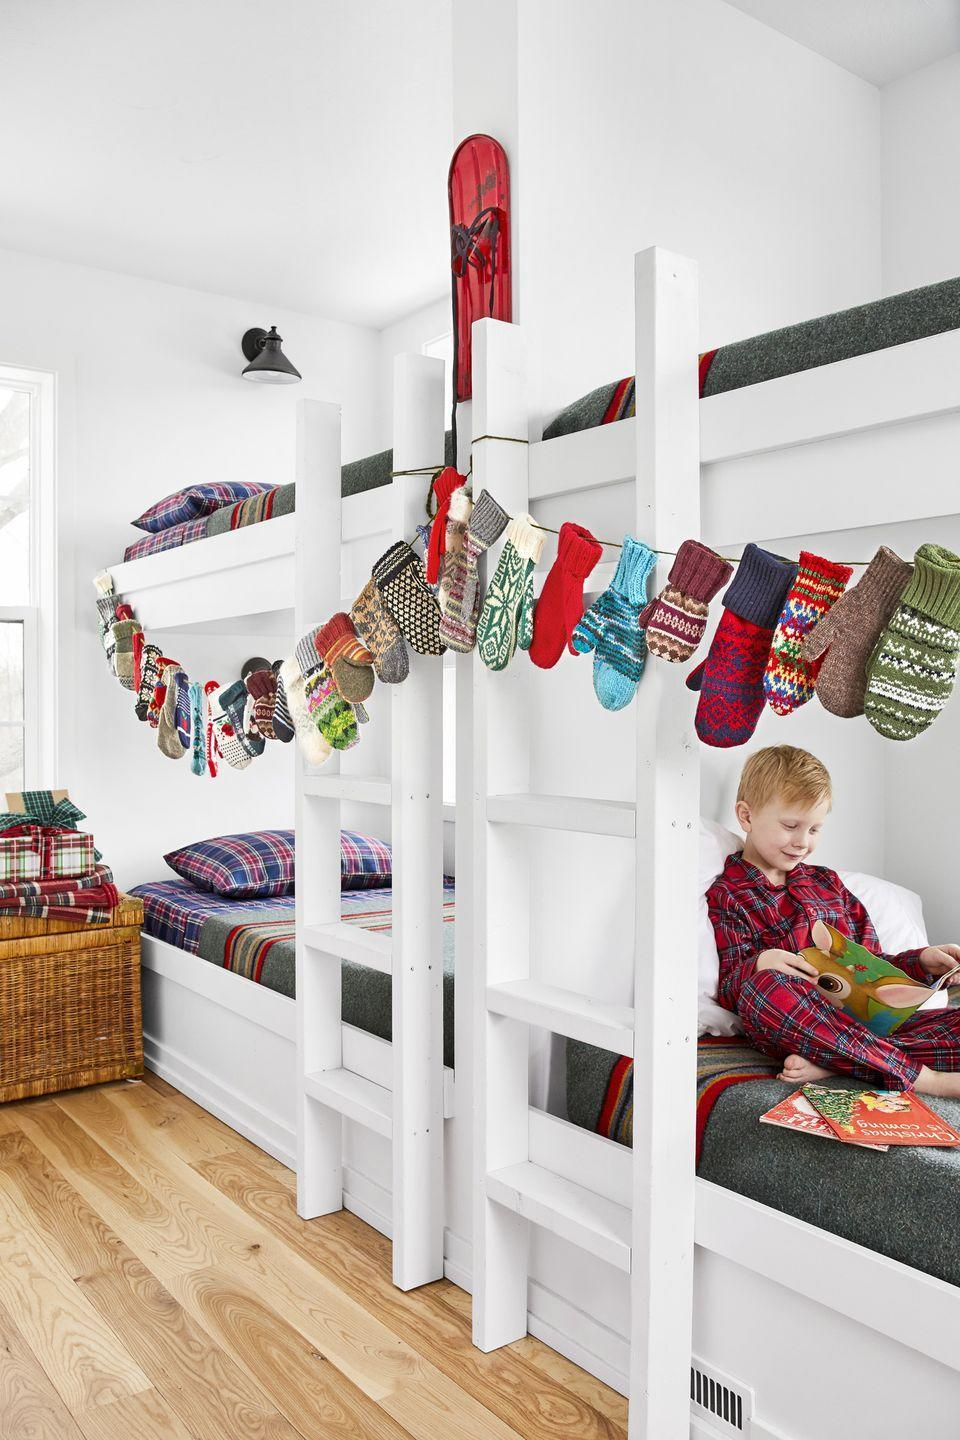 """<p>Put your old winter gear to good use by simply stringing mittens together to make this craft that's perfect for a kids room. </p><p><a class=""""link rapid-noclick-resp"""" href=""""https://www.amazon.com/gp/product/B00OUEJ6UC?tag=syn-yahoo-20&ascsubtag=%5Bartid%7C10050.g.1247%5Bsrc%7Cyahoo-us"""" rel=""""nofollow noopener"""" target=""""_blank"""" data-ylk=""""slk:SHOP VINTAGE MITTENS"""">SHOP VINTAGE MITTENS</a></p>"""